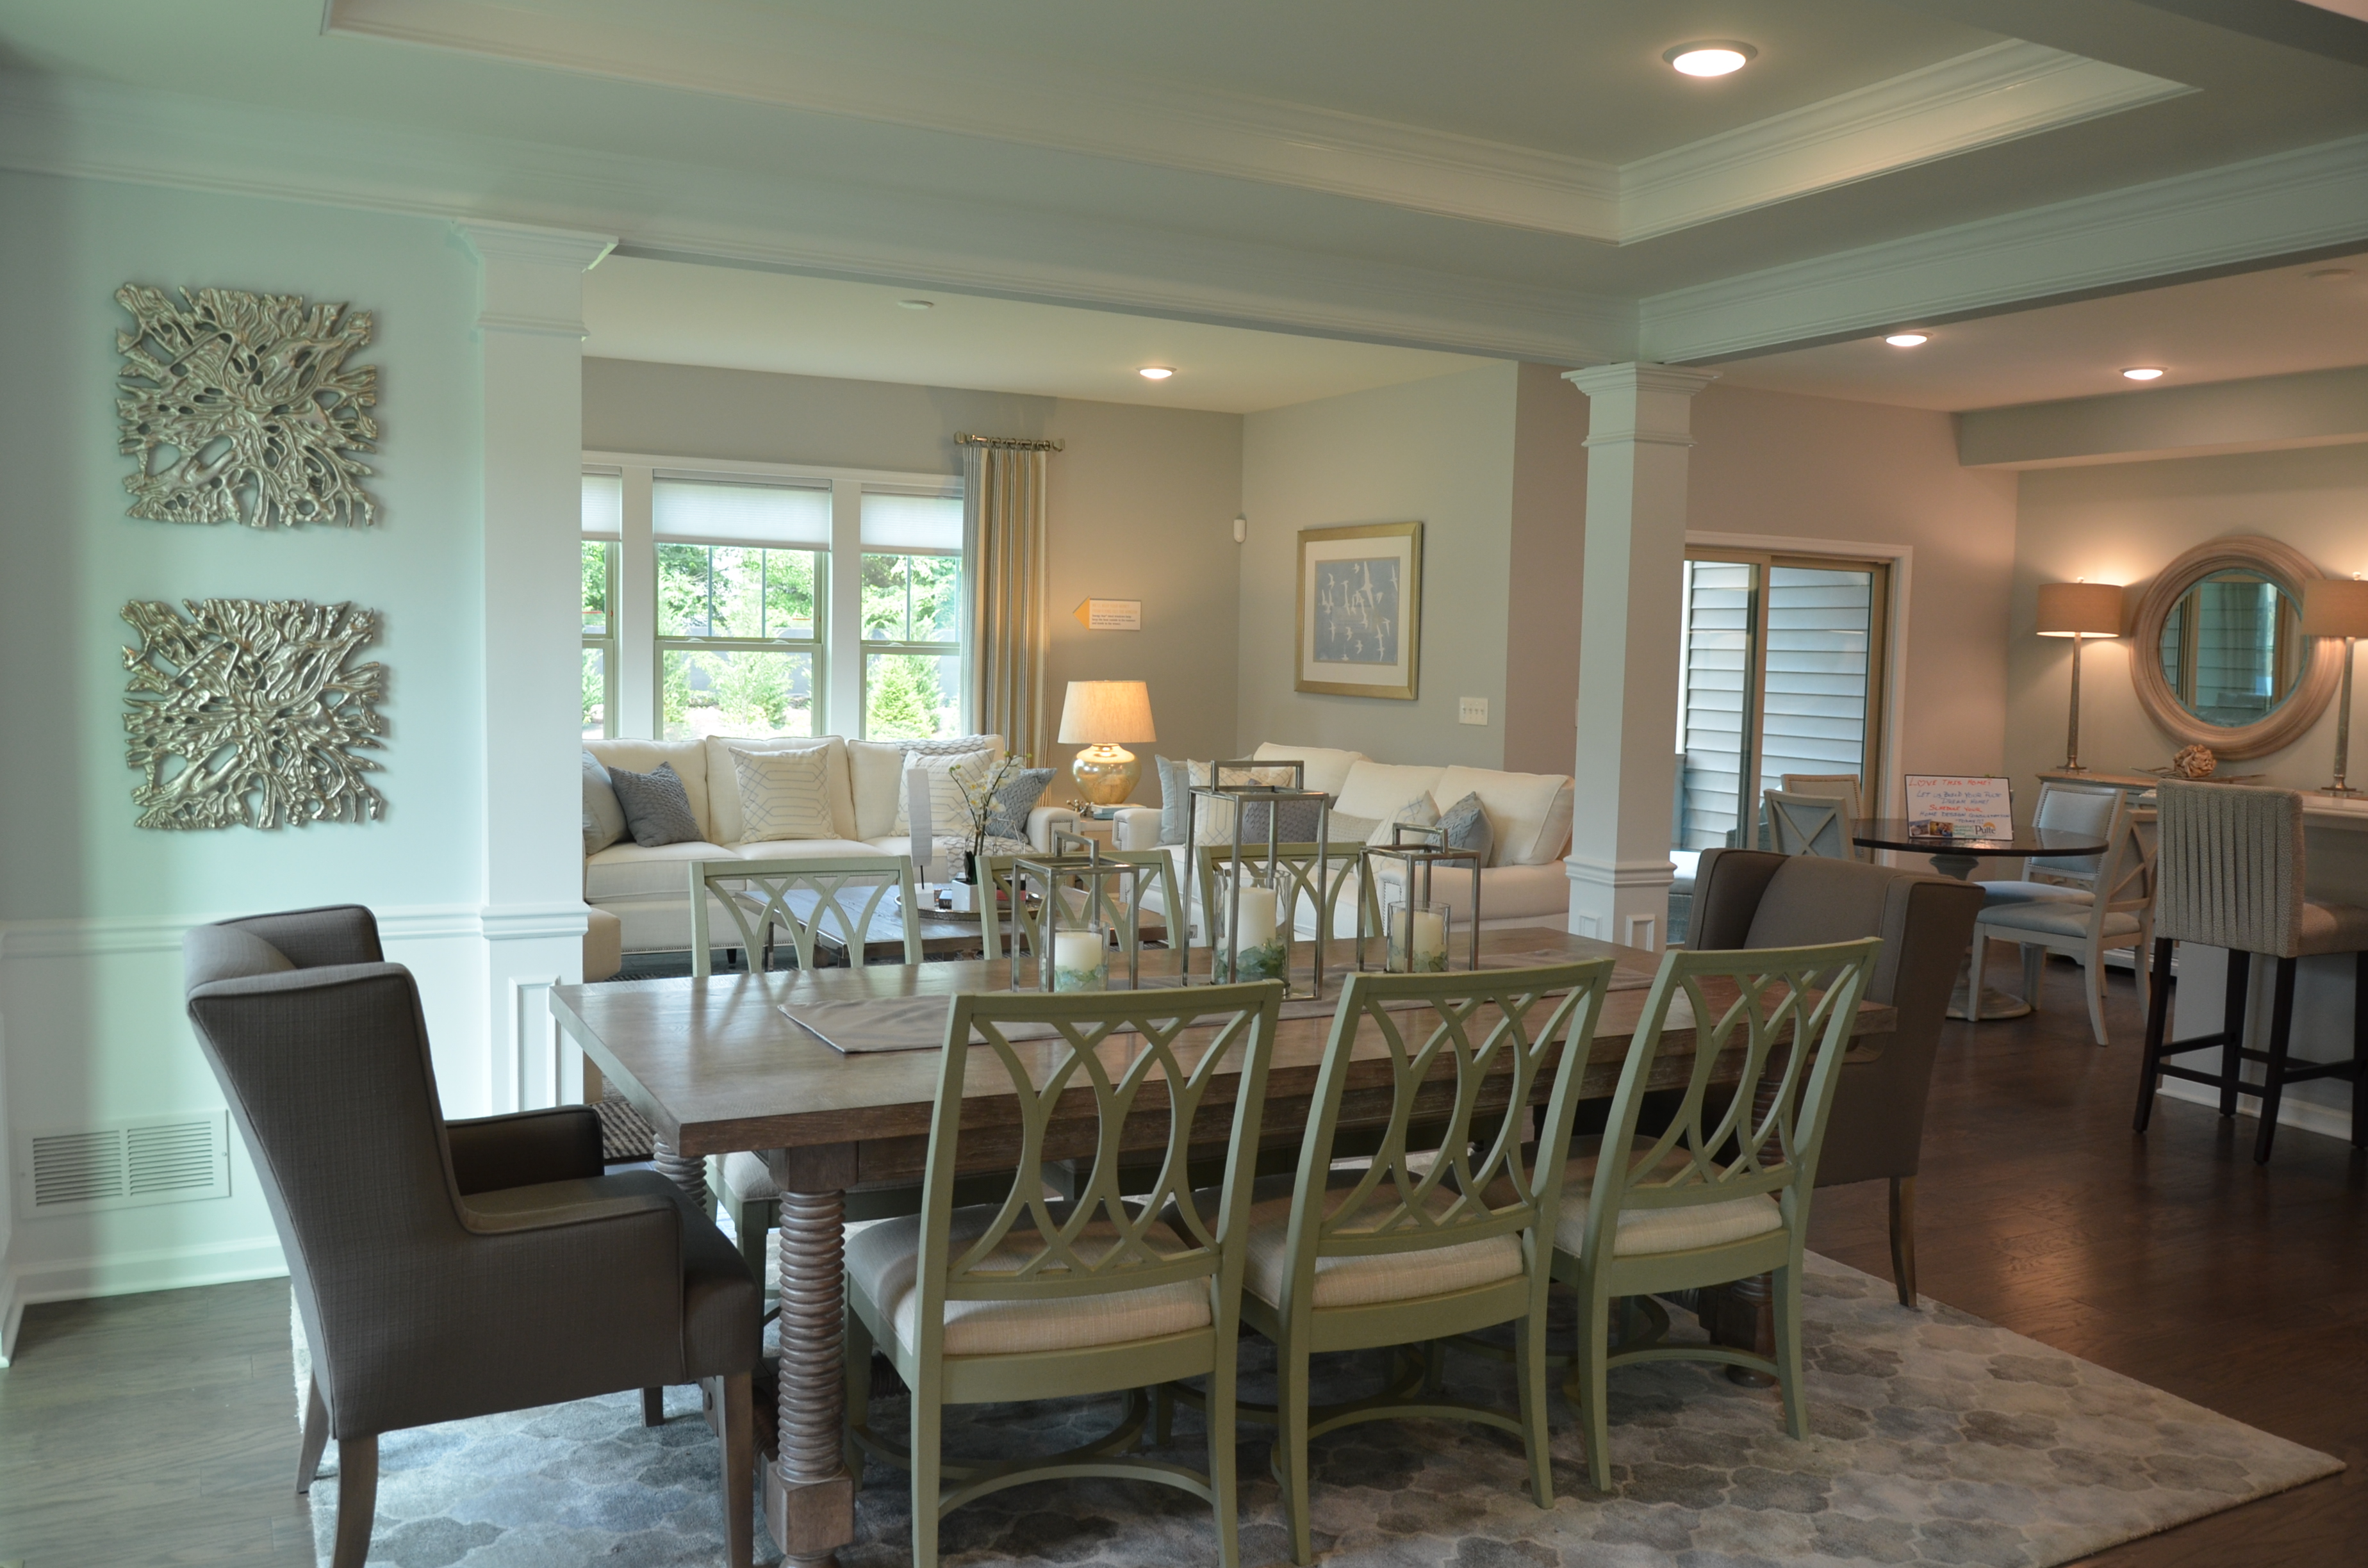 The Gables at Woodcliff Lake NJ Luxury Townomes